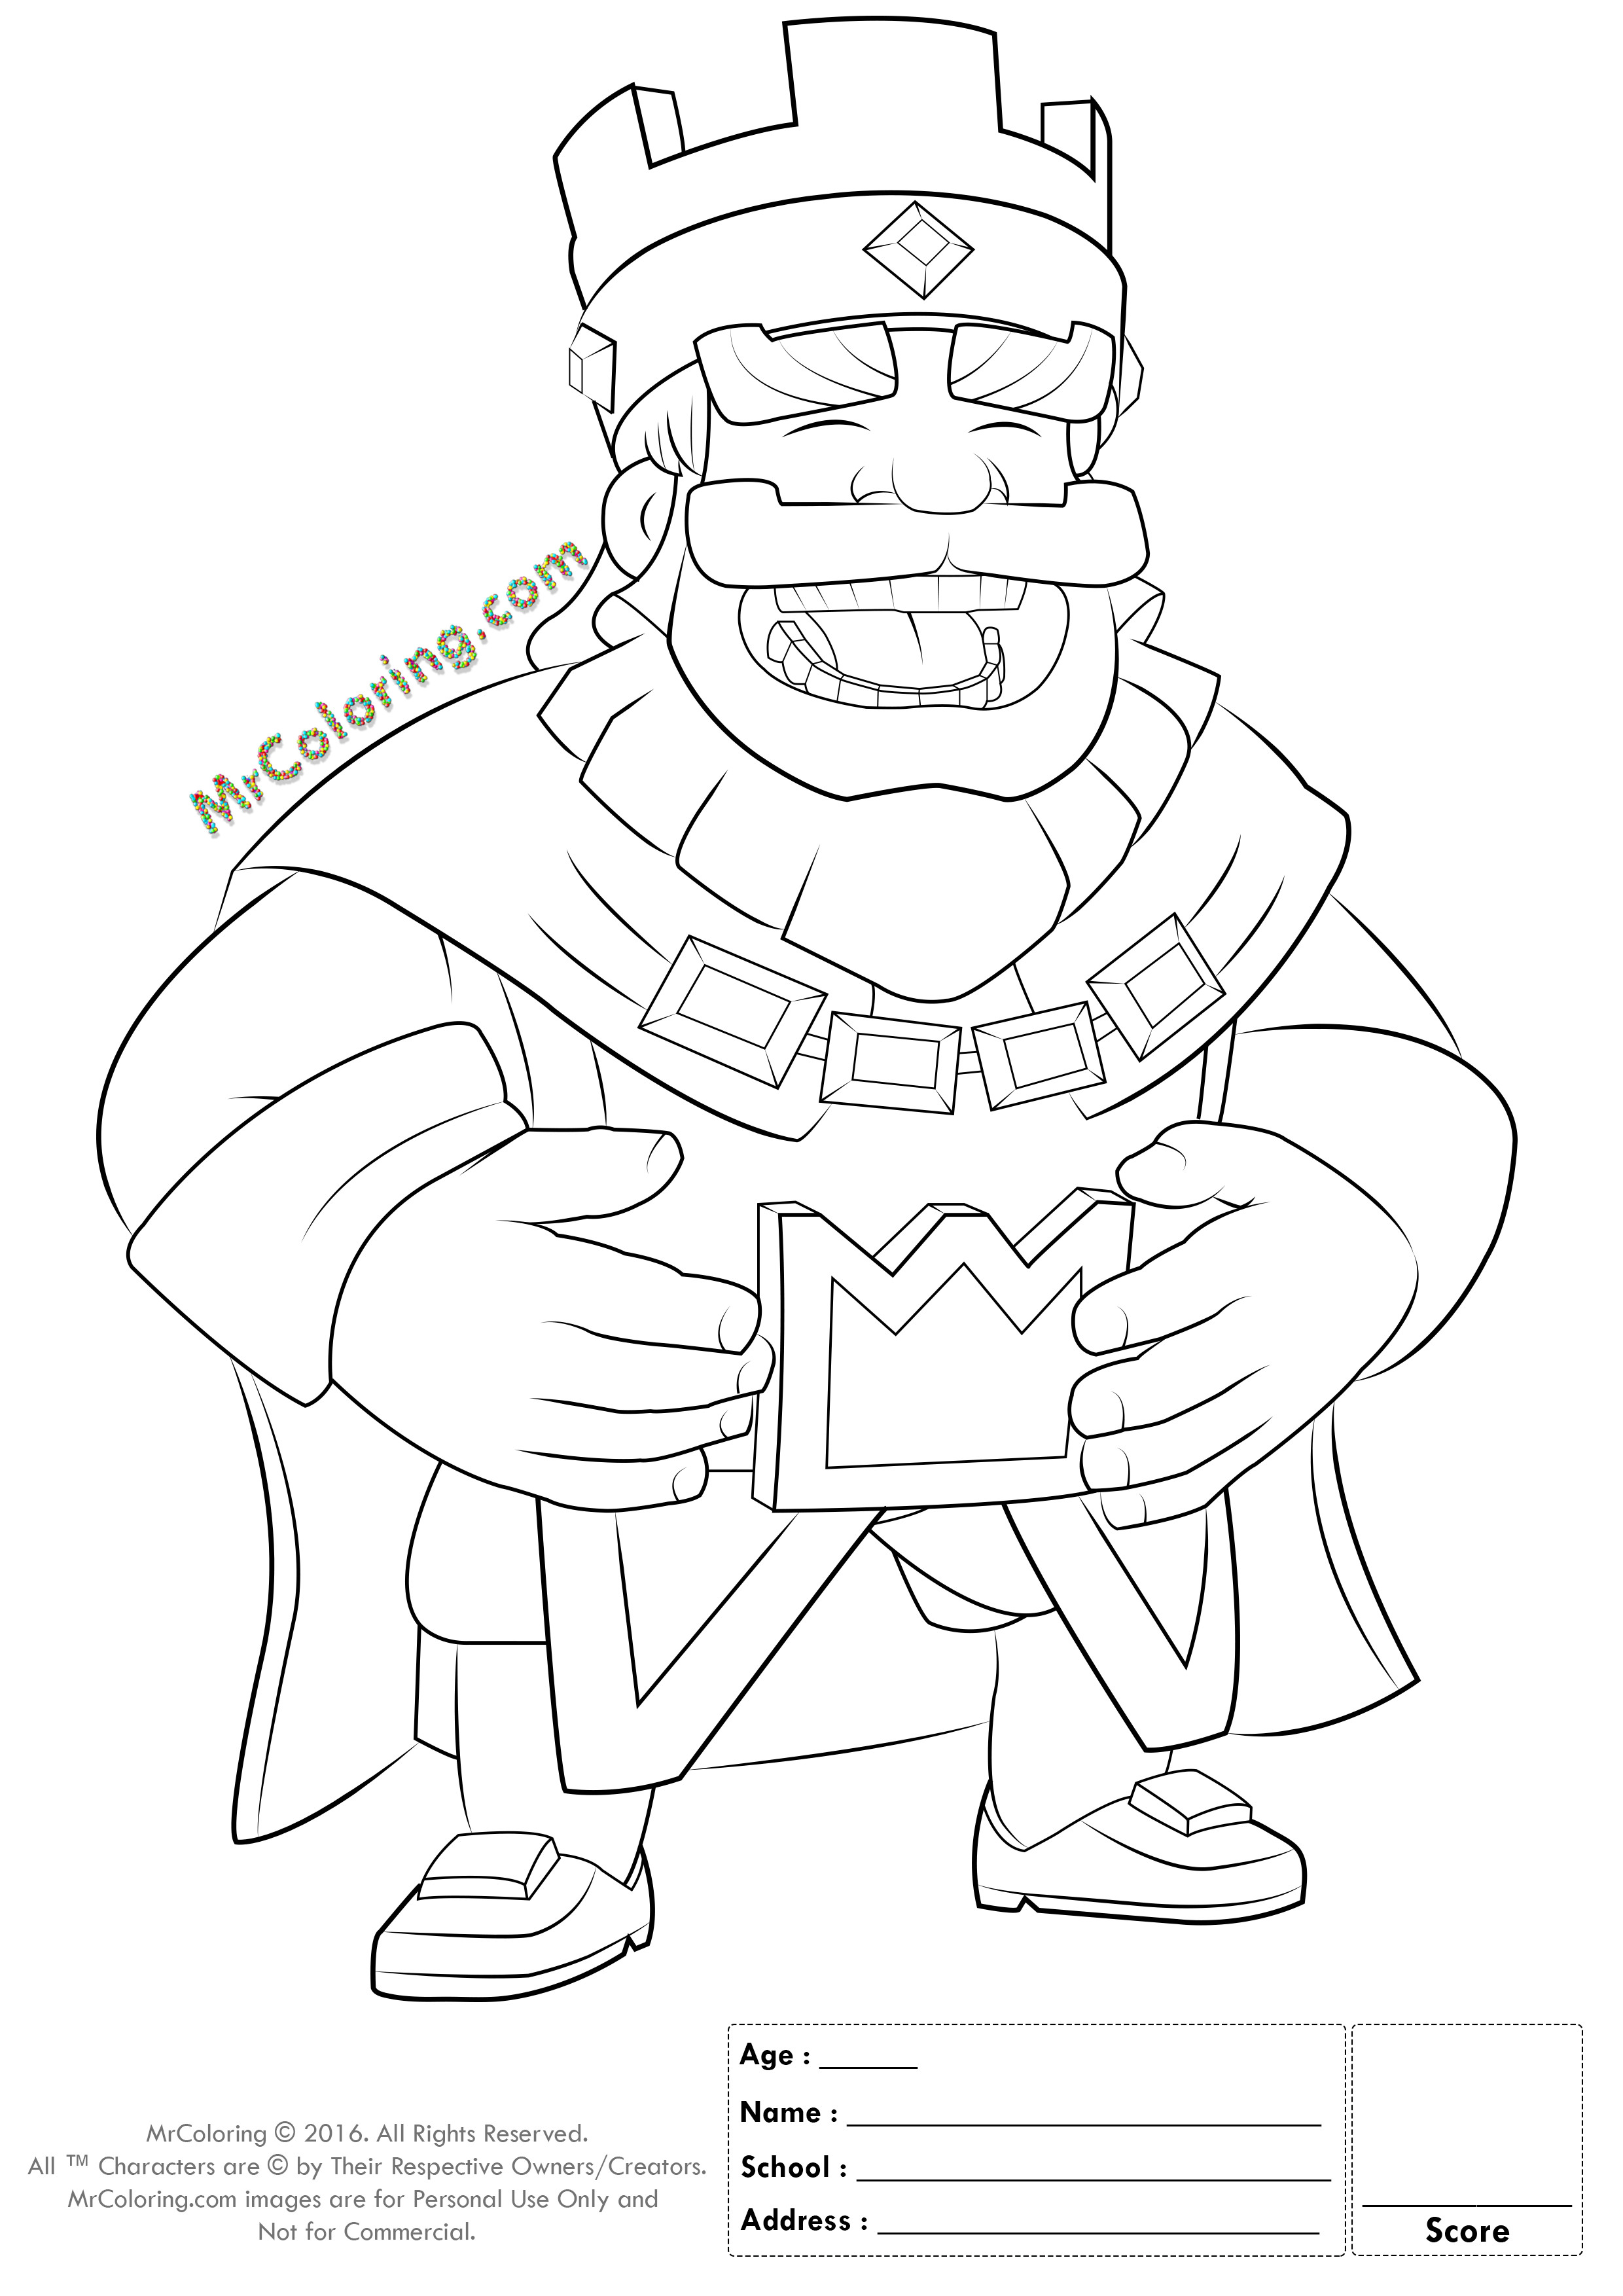 Royal Coloring Pages  Printable Blue King Clash Royale line Coloring Pages 1